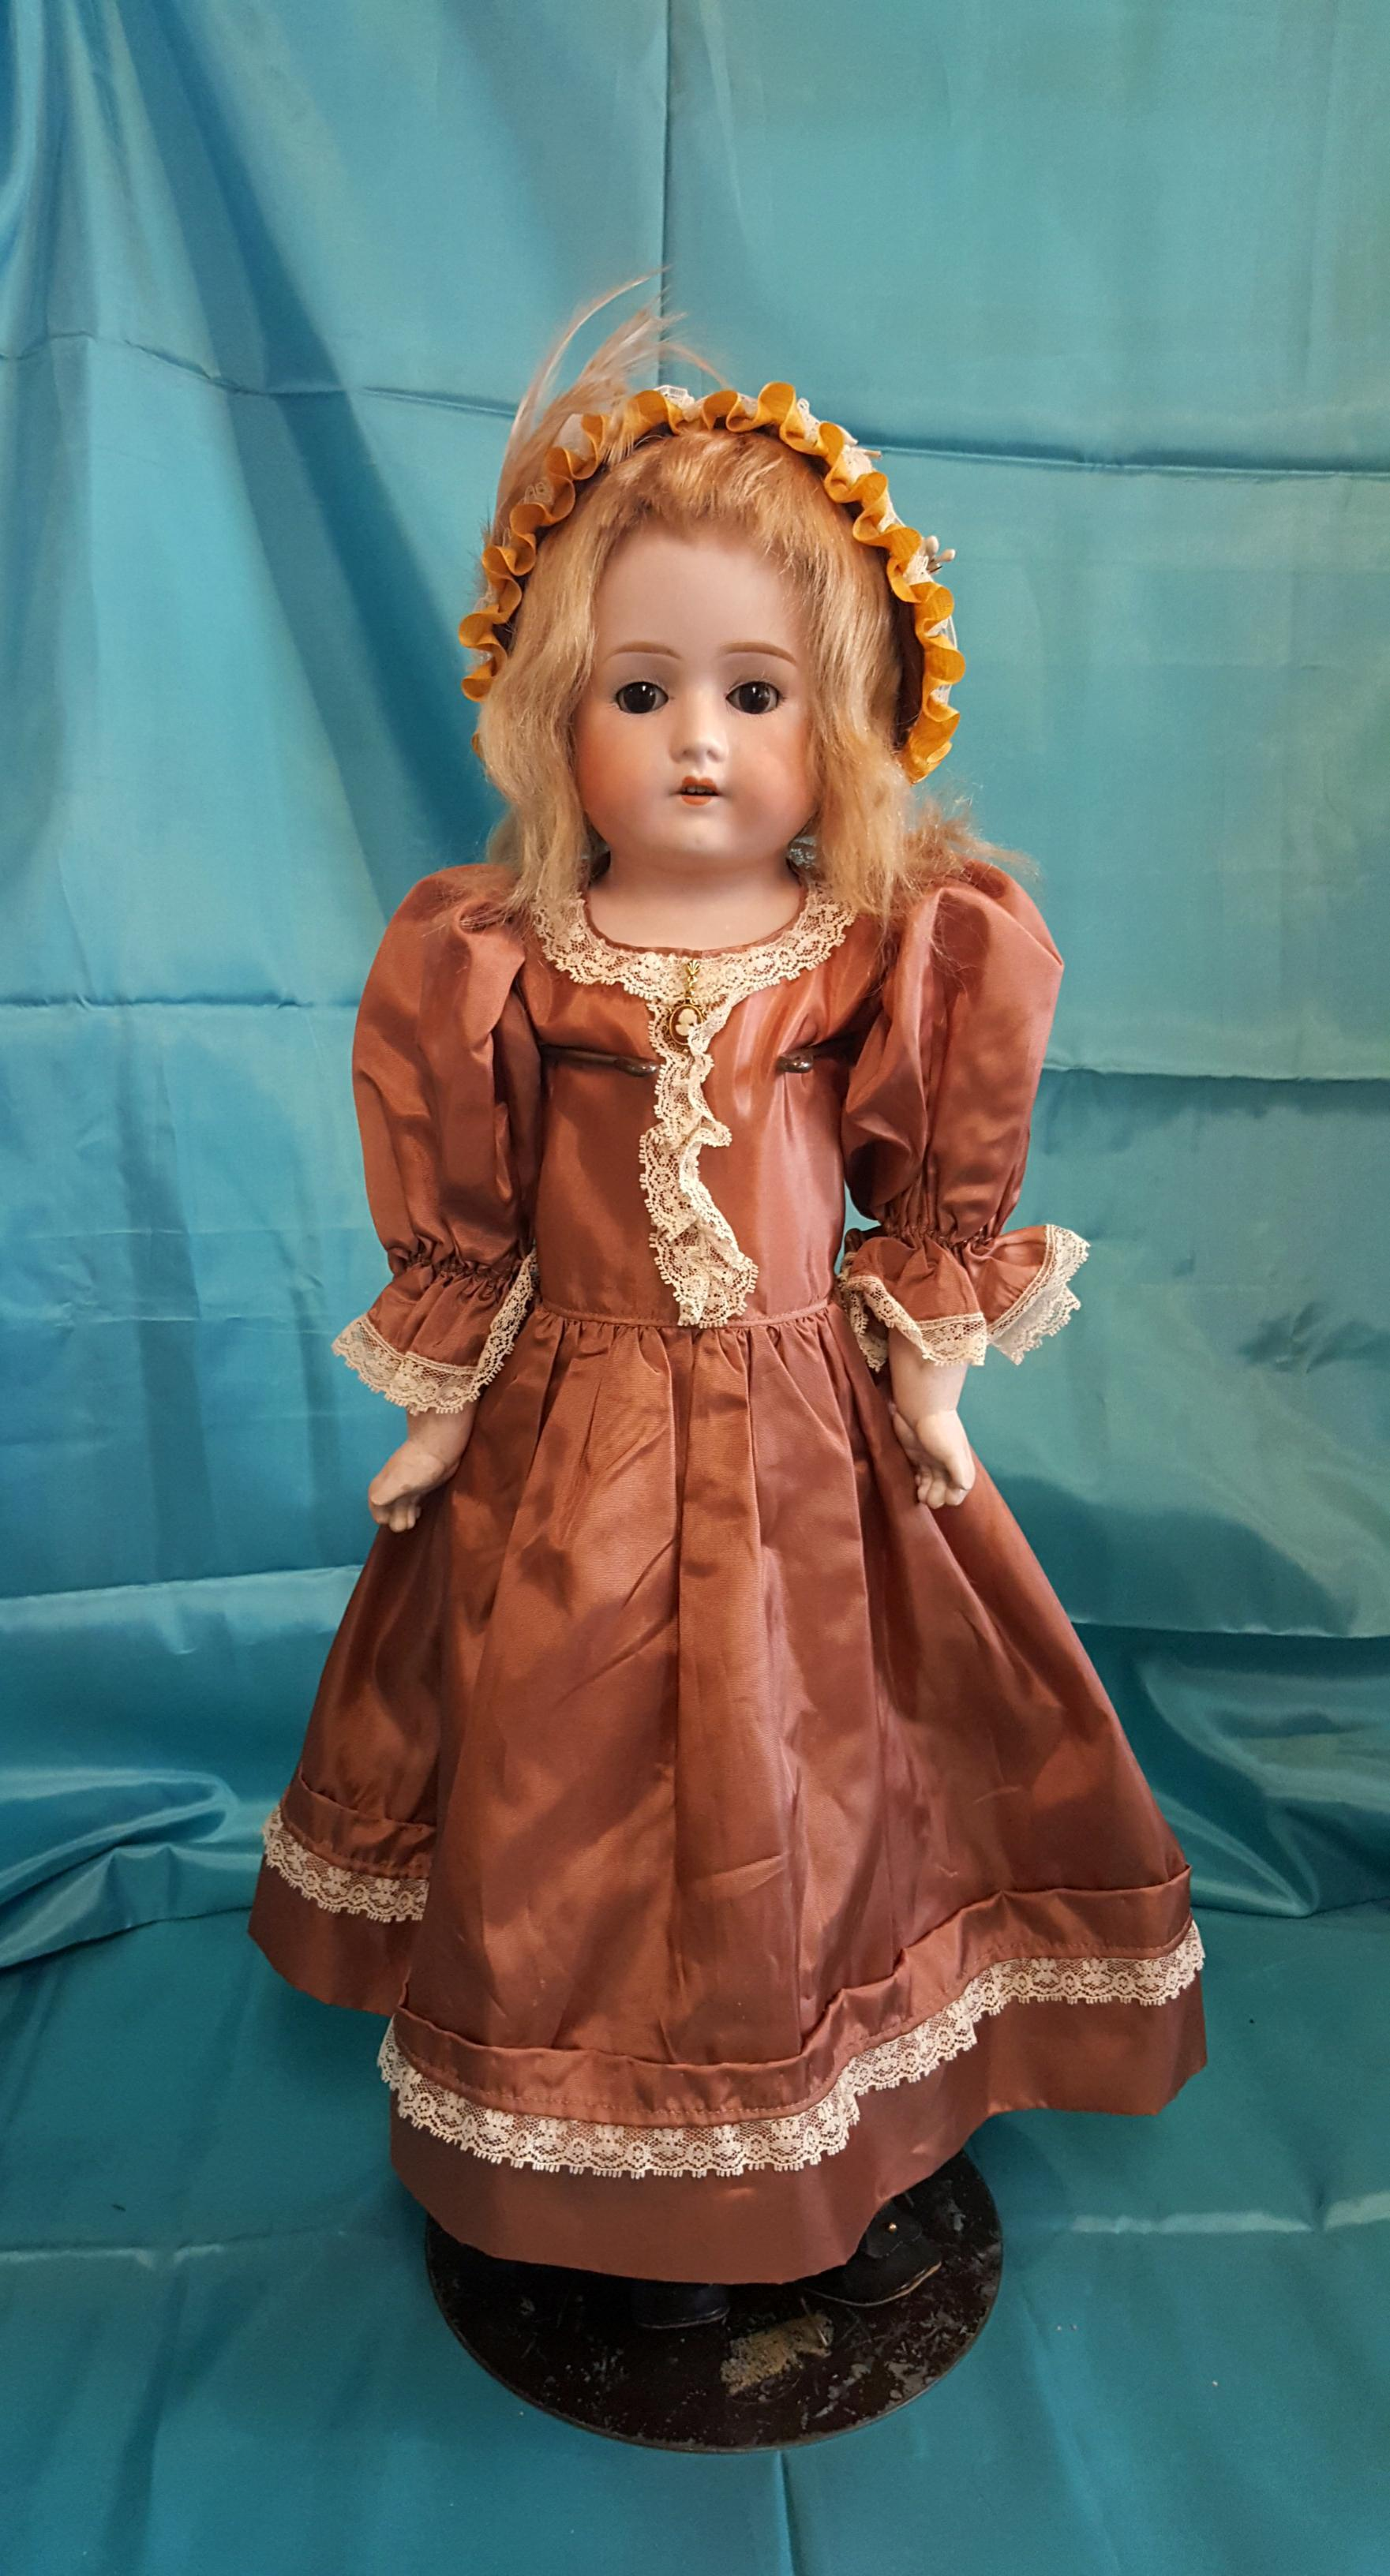 Antique Bisque Armand Marseille Mabel in Vintage Taffeta Dress